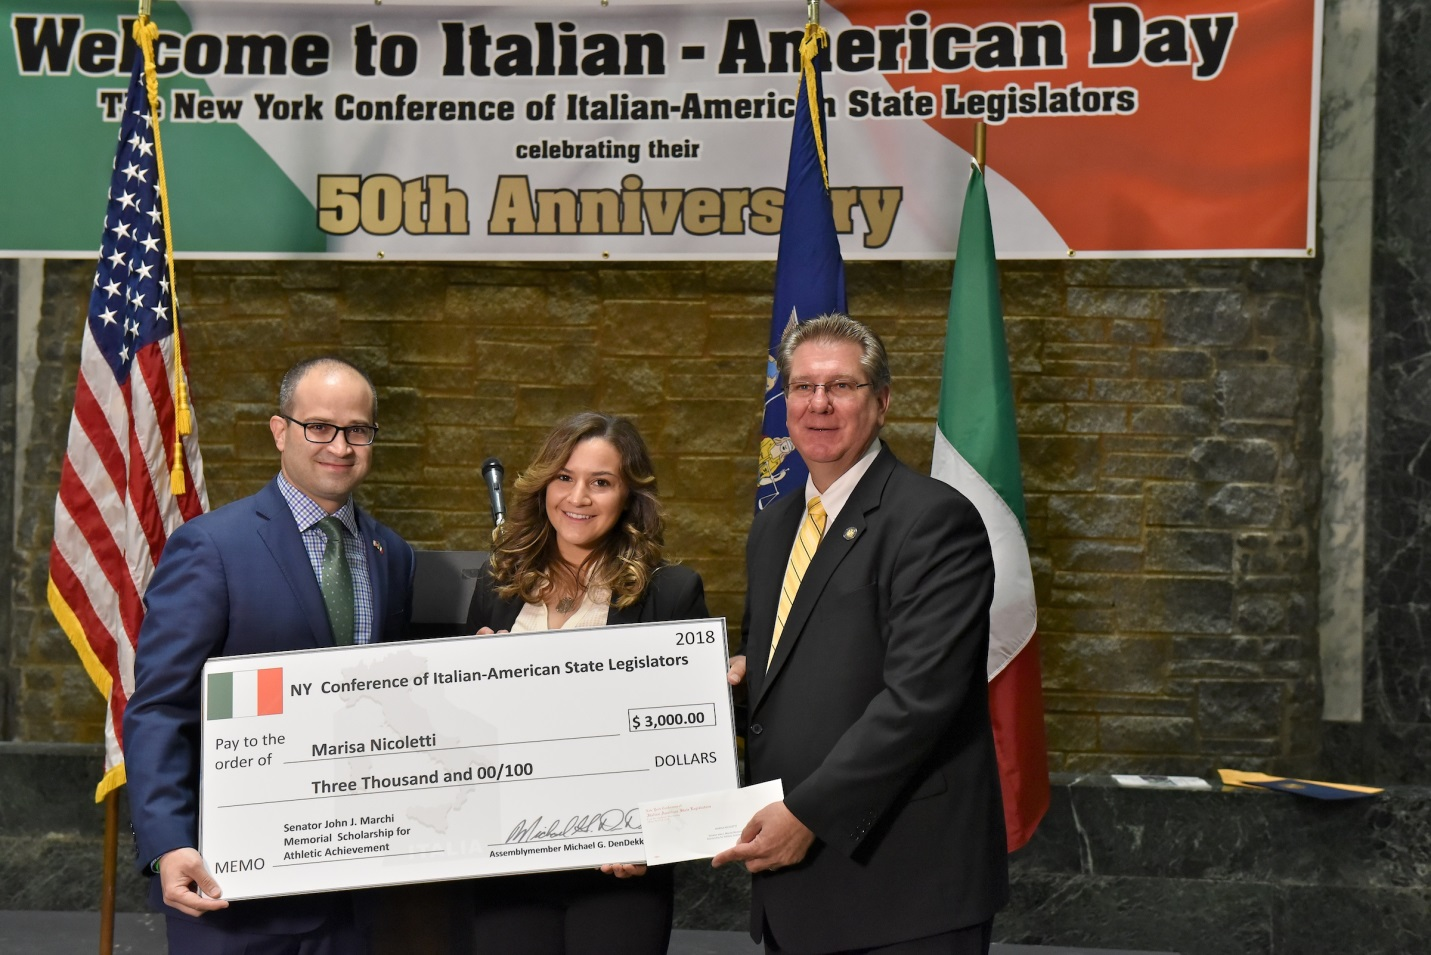 Assemblyman Ed Ra (R-Franklin Square) and Assemblyman Michael DenDekker (D-East Elmhurst) presented Marissa Nicoletti with a check for a $3,000 scholarship from the New York Conference of Italian-American State Legislators on Italian-American Day in Albany on Tuesday, June 5.<br />&nbsp;